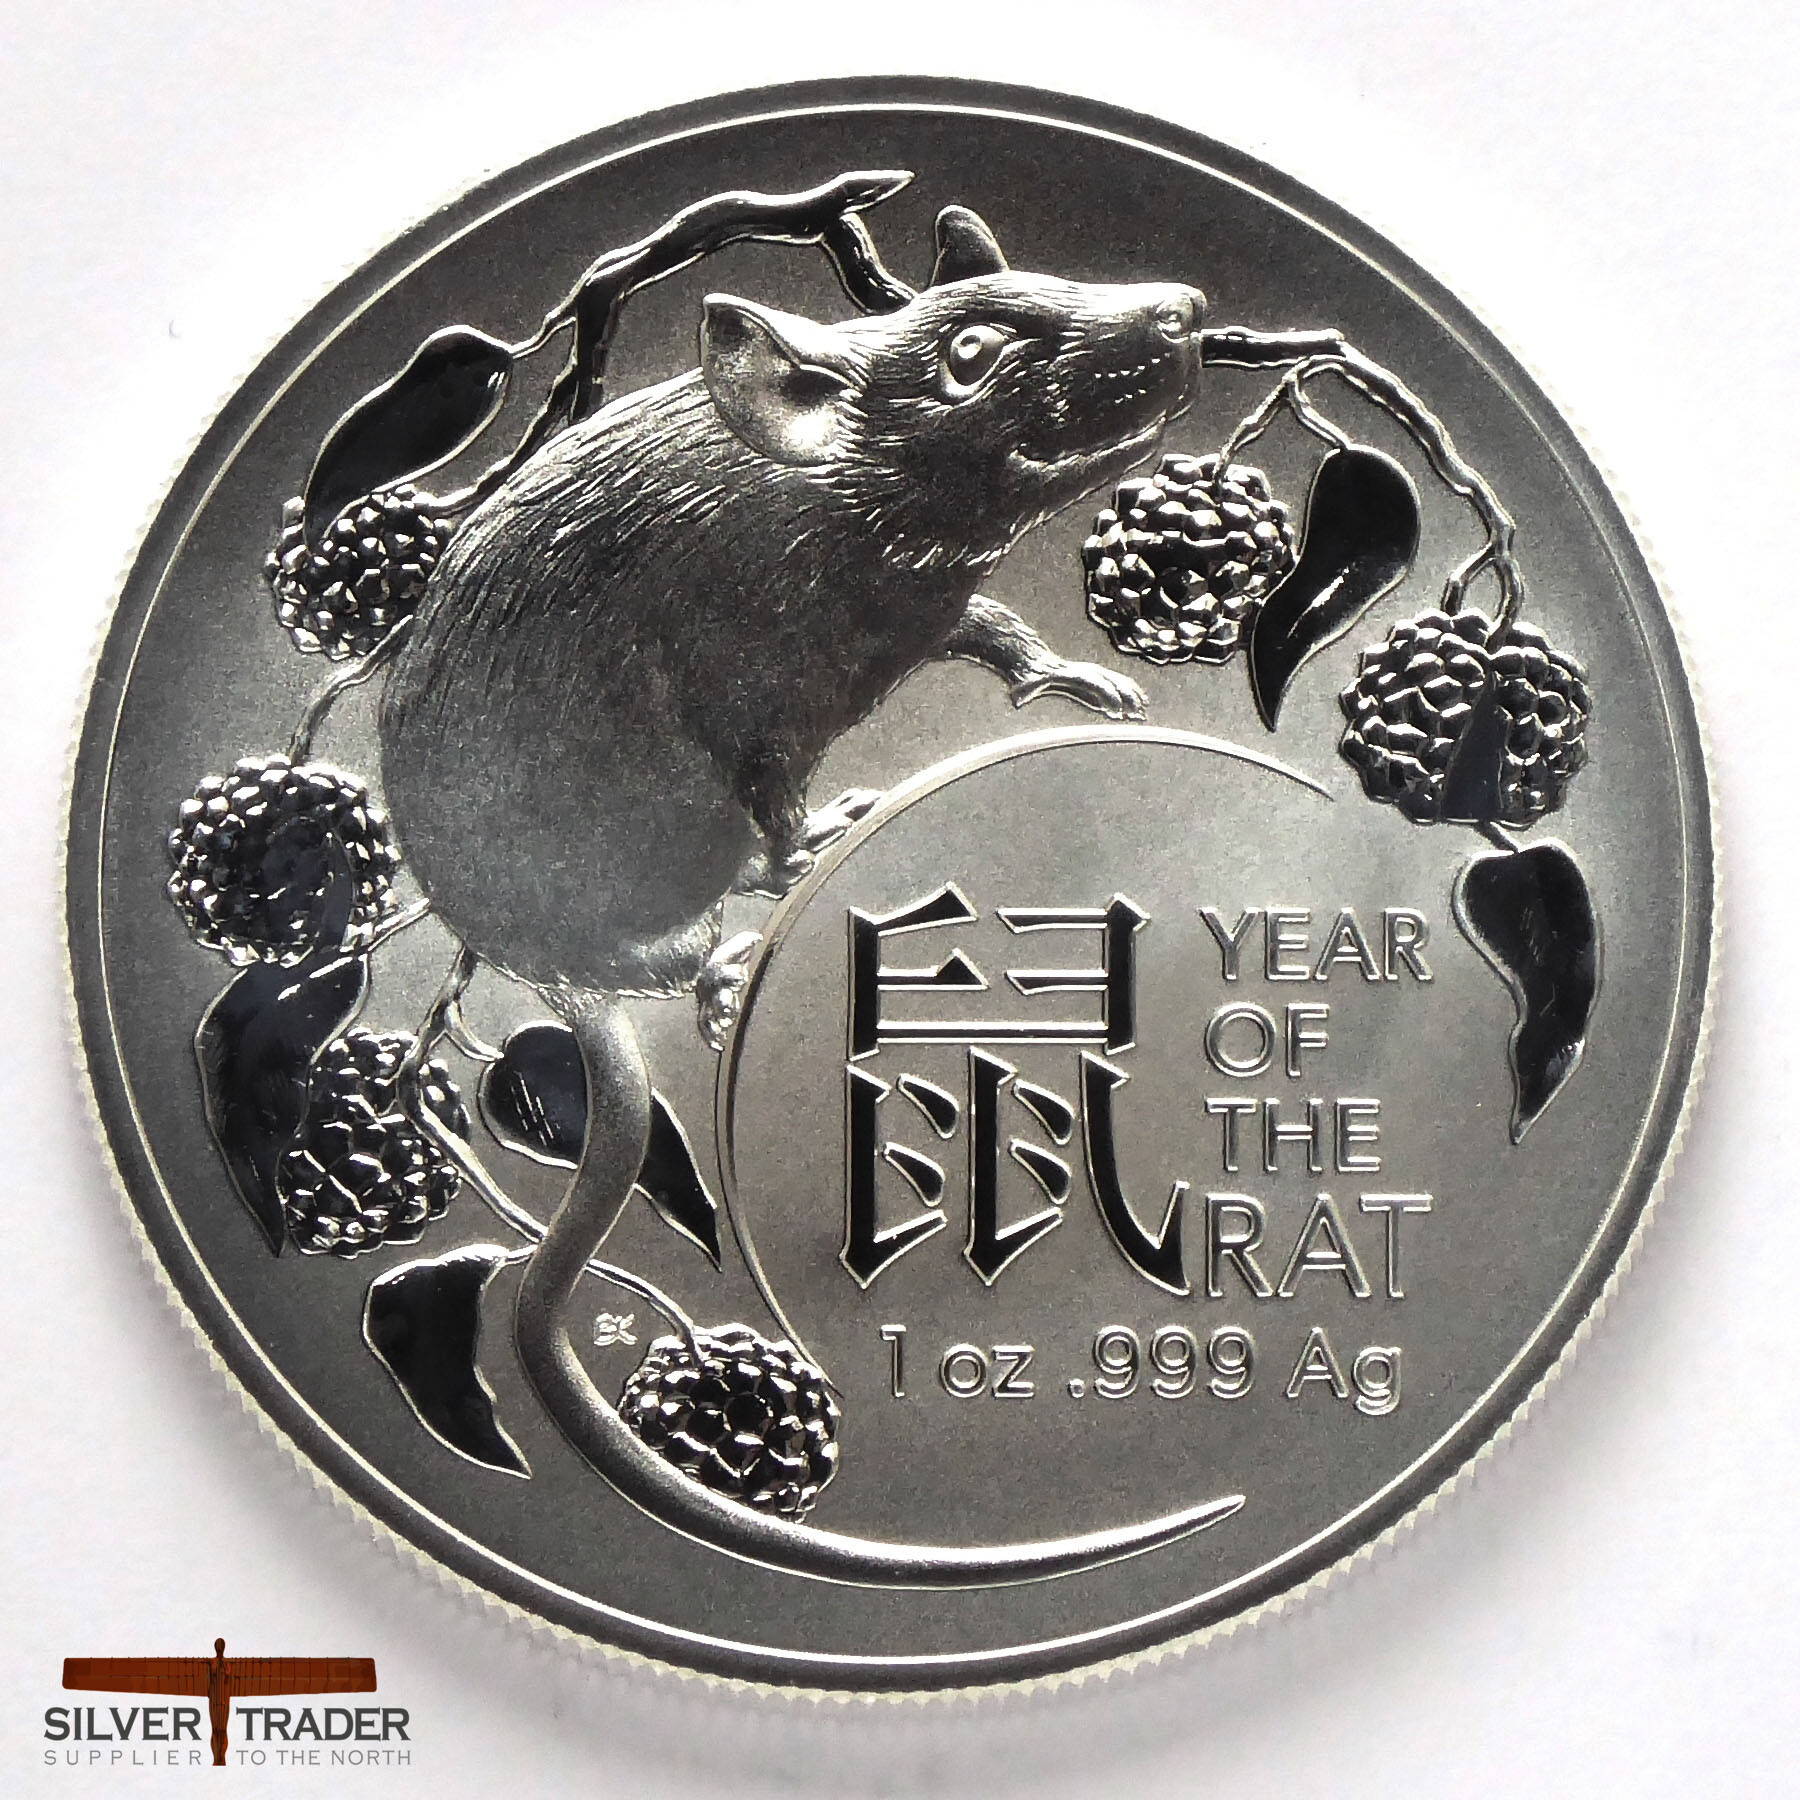 2018 Chinese Lunar Year Of The Pig 1 oz .999 Silver USA Made Proof-Like BU Round